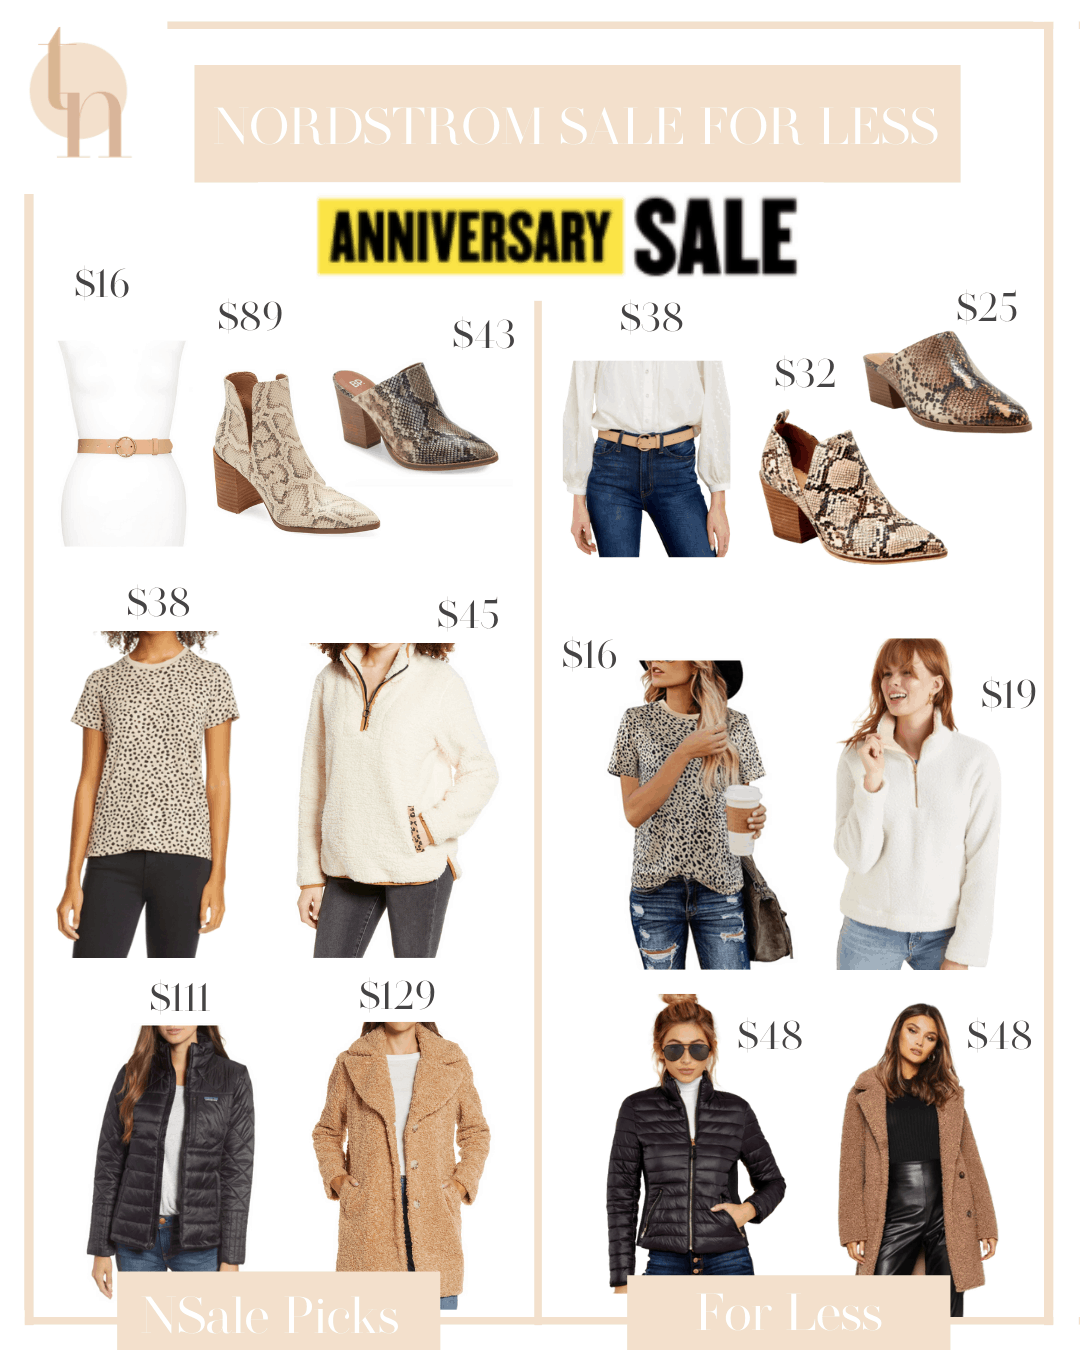 Nordstrom Anniversary Sale by popular Dallas fashion blog, Glamorous Versatility: collage image of a tan belt, snake skin ankle boots, snake skin heel mules, leopard print t-shirt, wubby fleece pull over, black quilted jacket, and tan teddy coat.